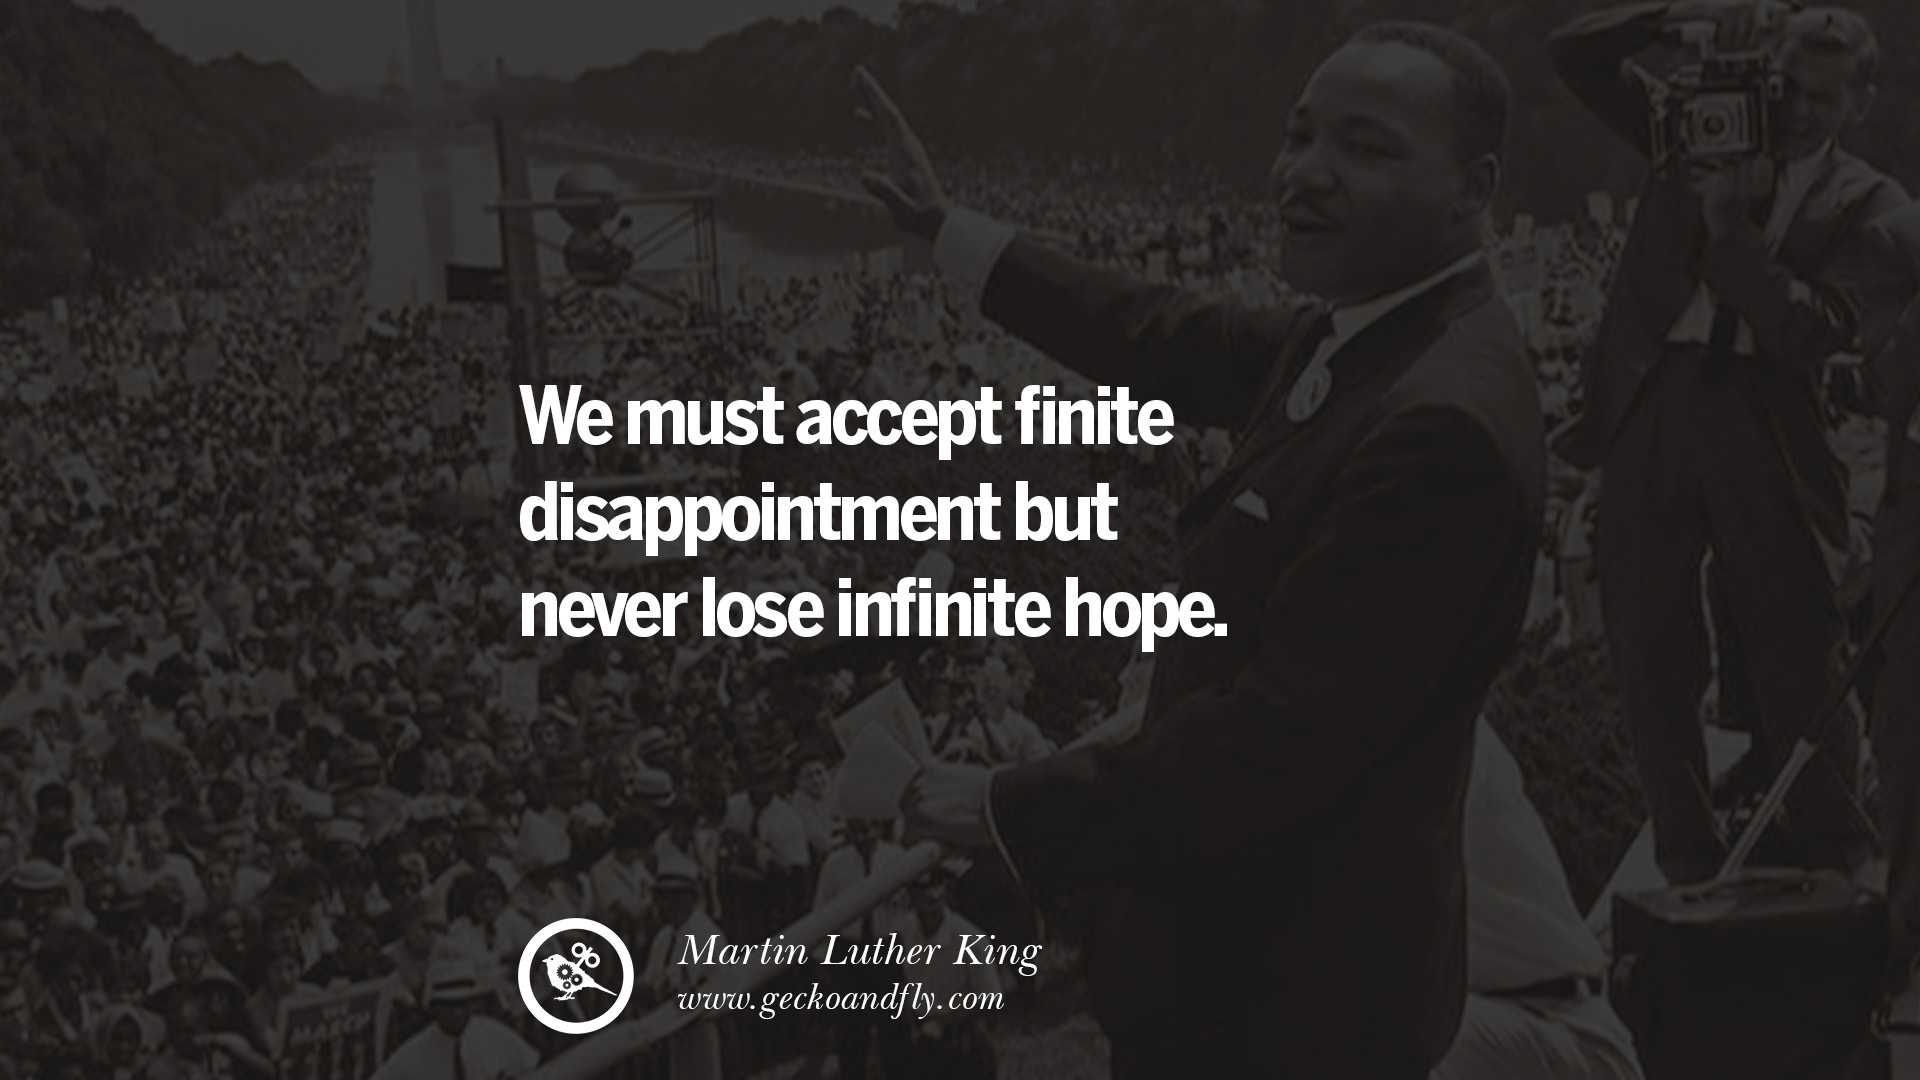 Quotes Hope 30 Powerful Martin Luther King Jr Quotes On Equality Rights Black